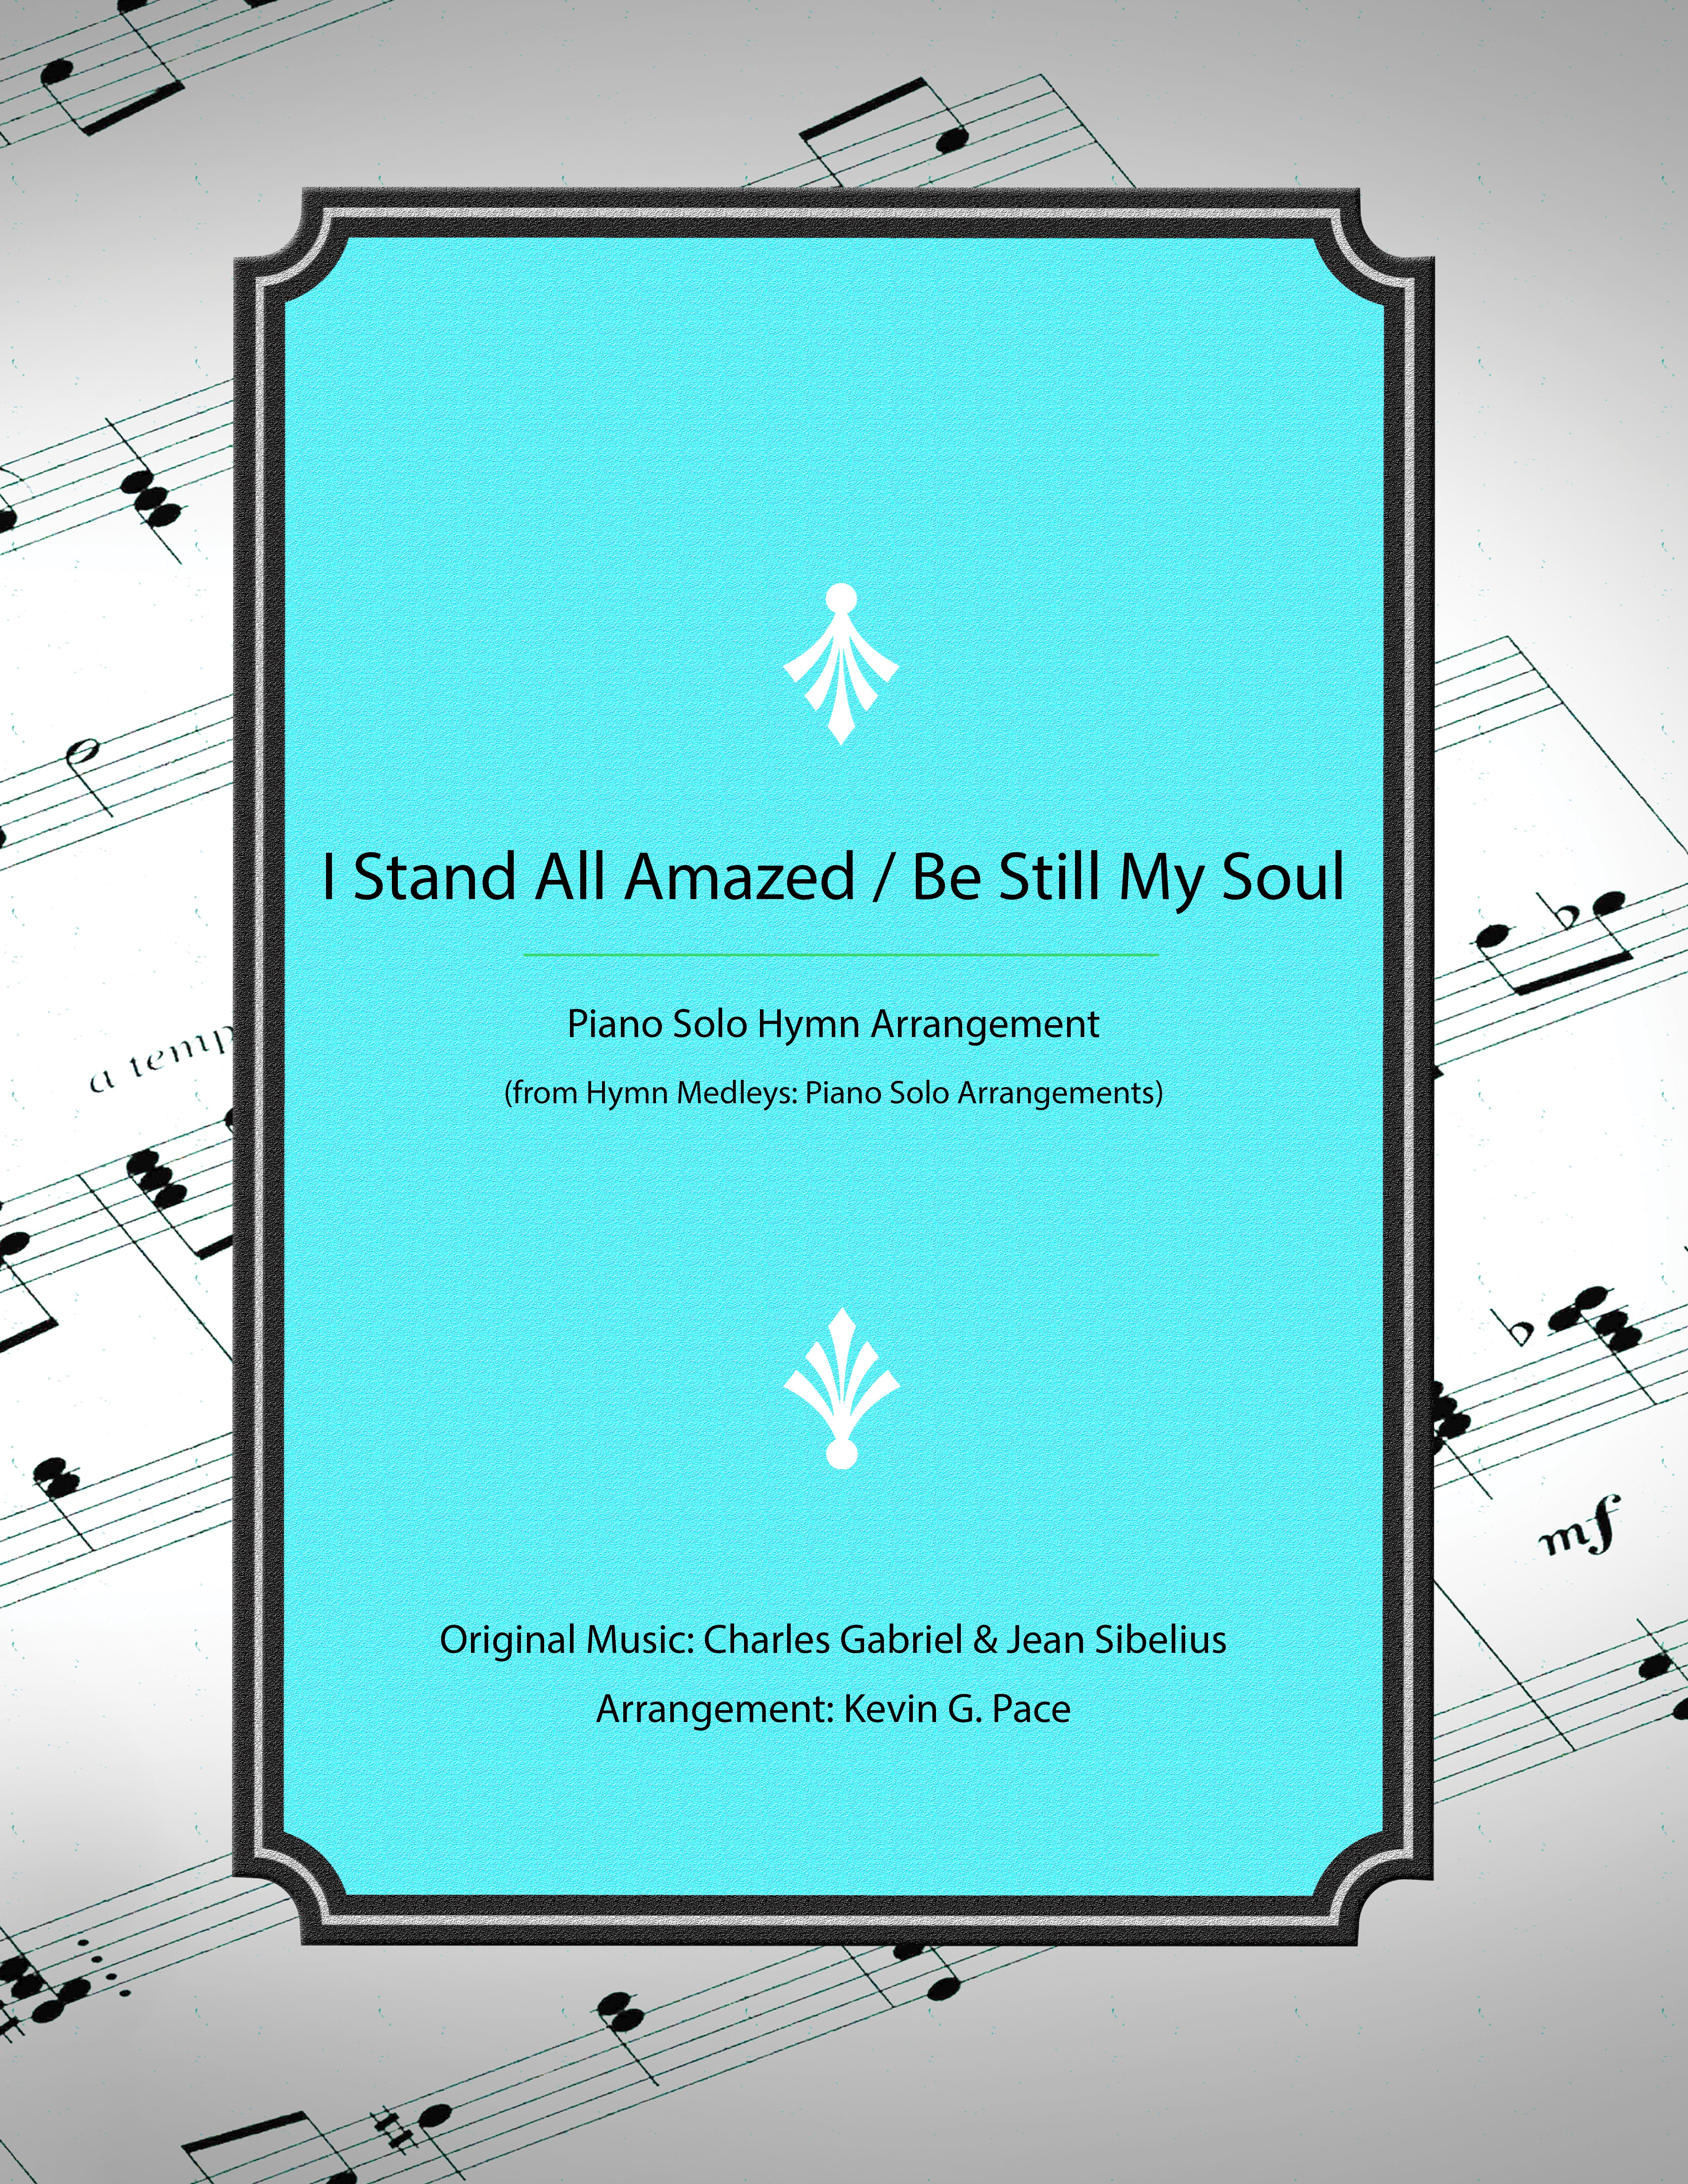 I_stand_all_amazed_-_be_still_my_soul_-_piano_medley